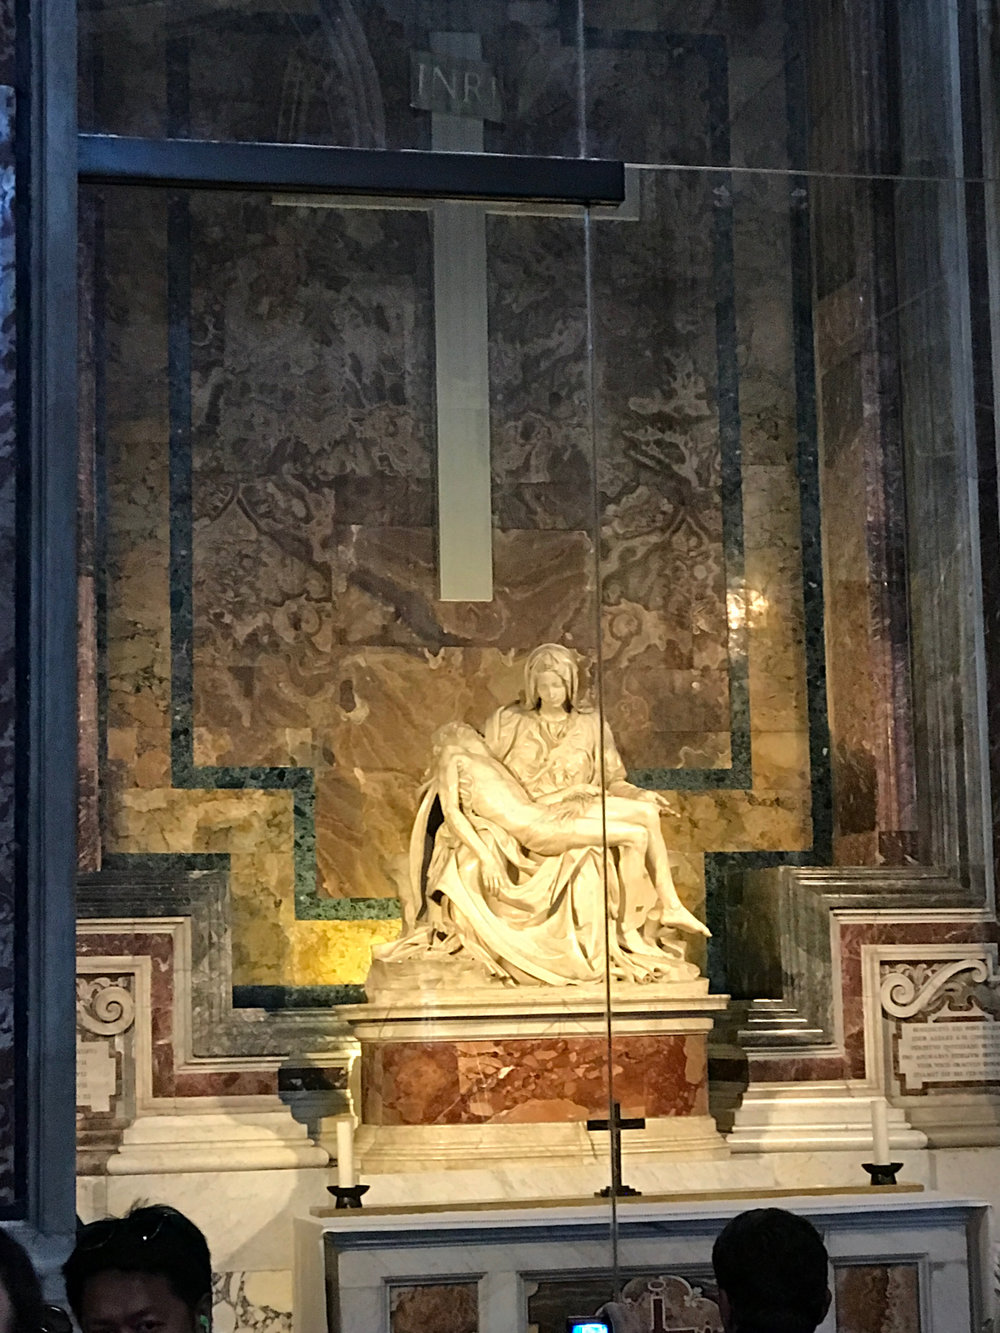 i think i audibly squealed when I saw that the original pieta was in the entryway. i studied it in art history years ago and couldn't believe such a famous sculpture was just right here!